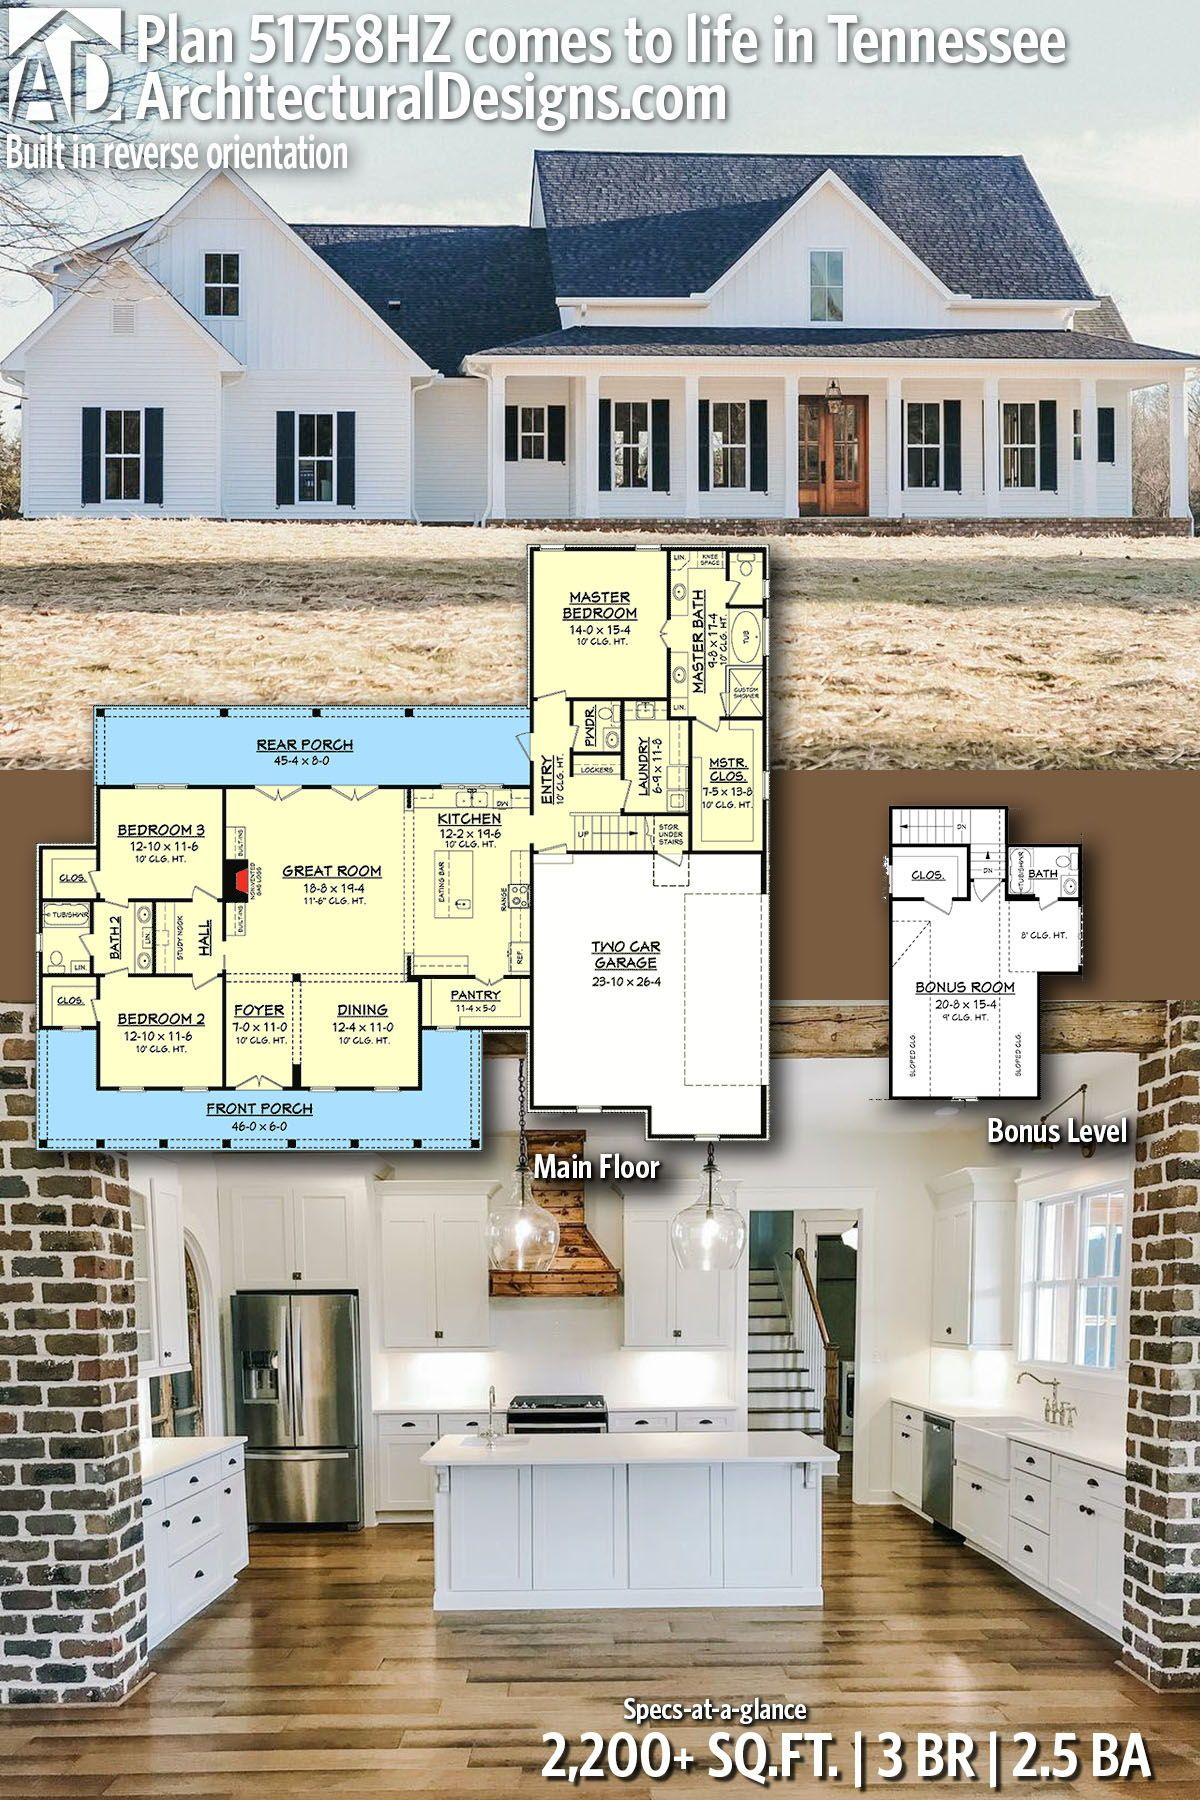 The ellermont custom craftsman house plan in plans pinterest and also rh